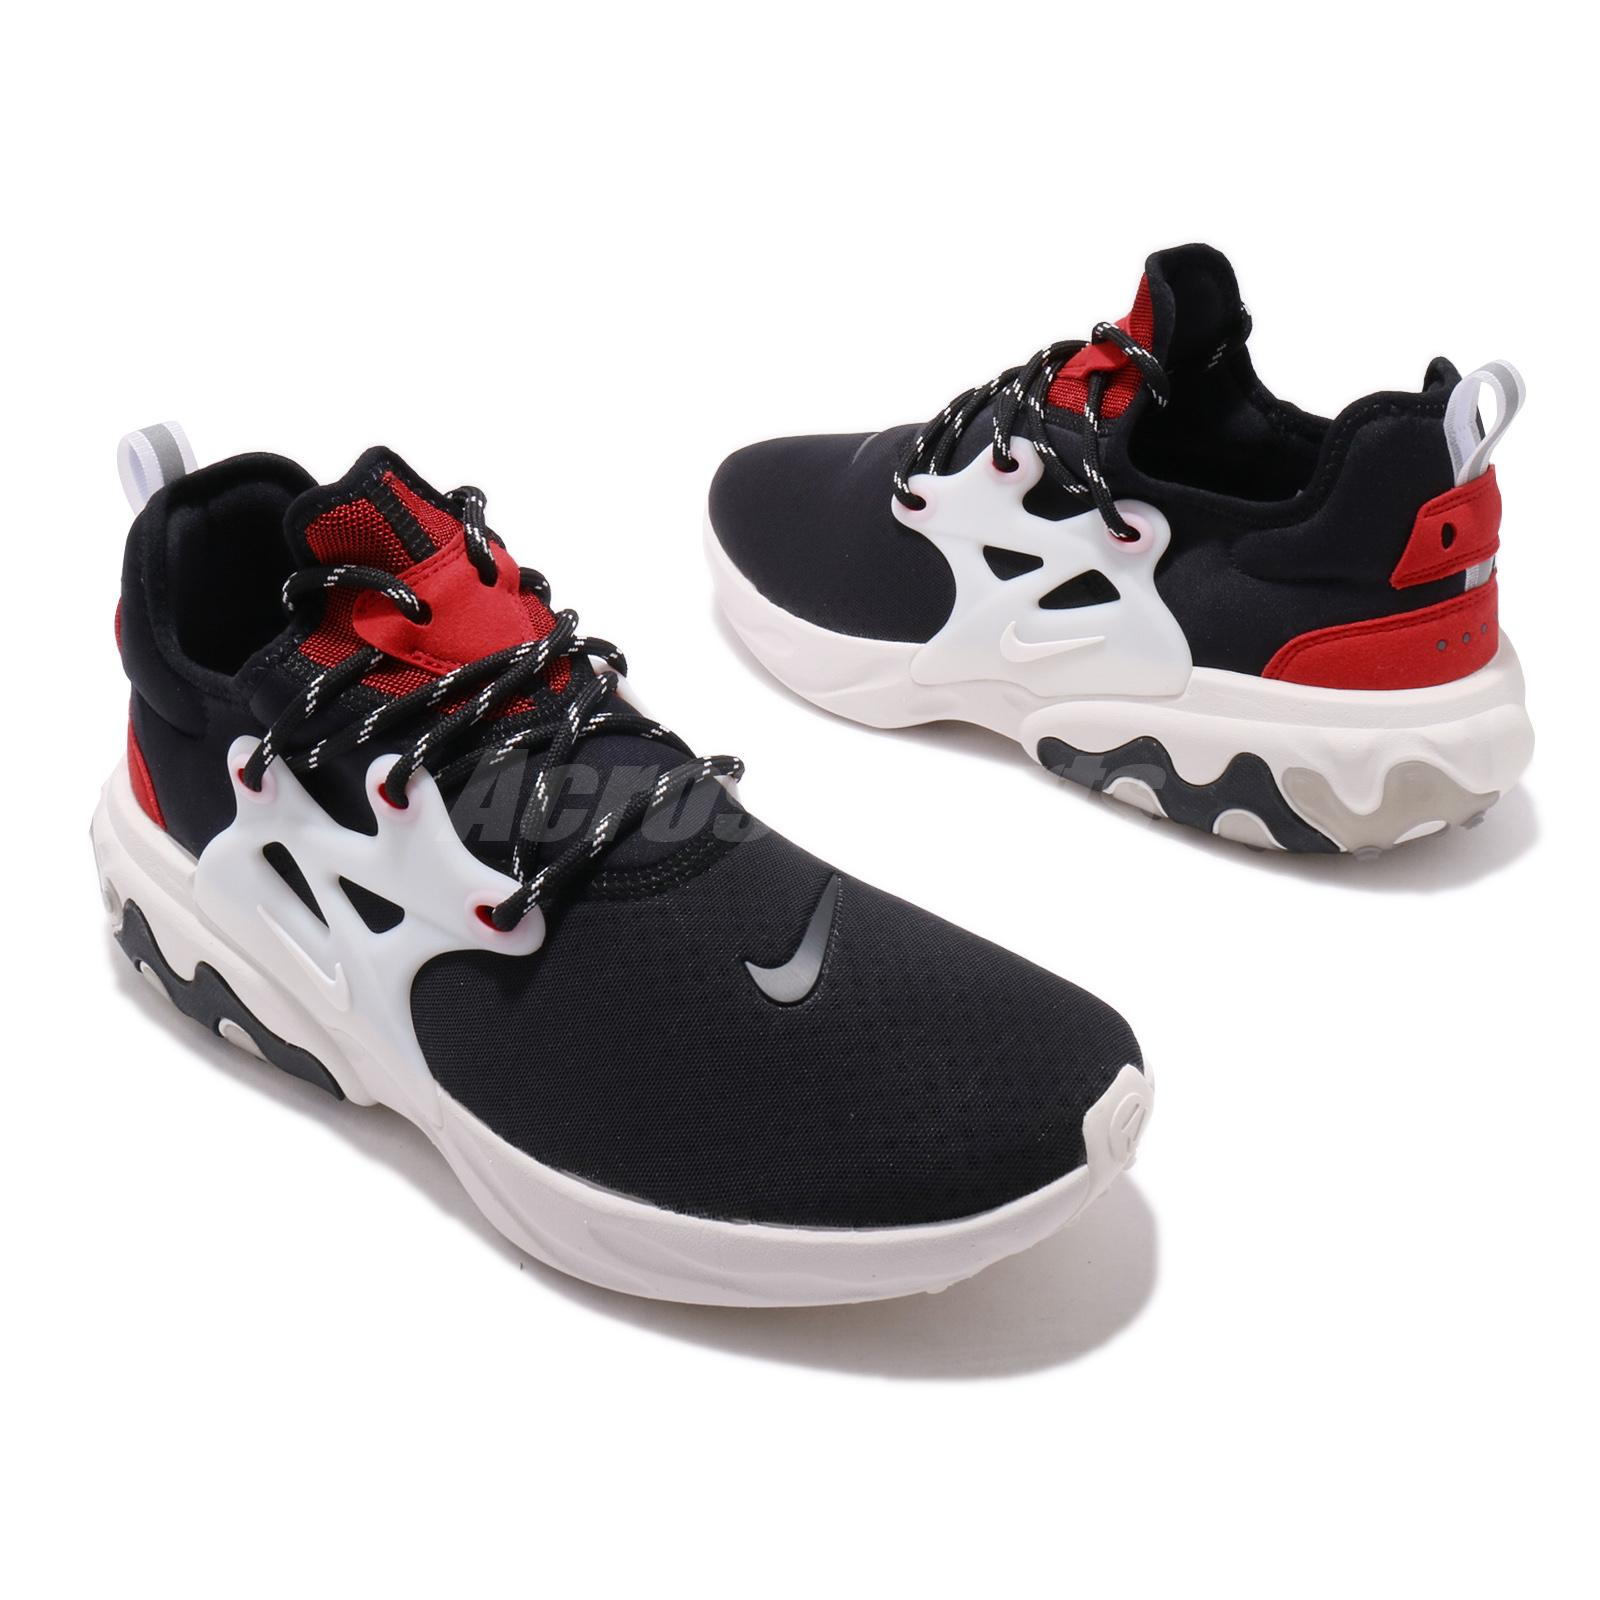 9880b2d539e07 Nike React Presto Black Phantom Red Men Running Shoes Sneakers ...